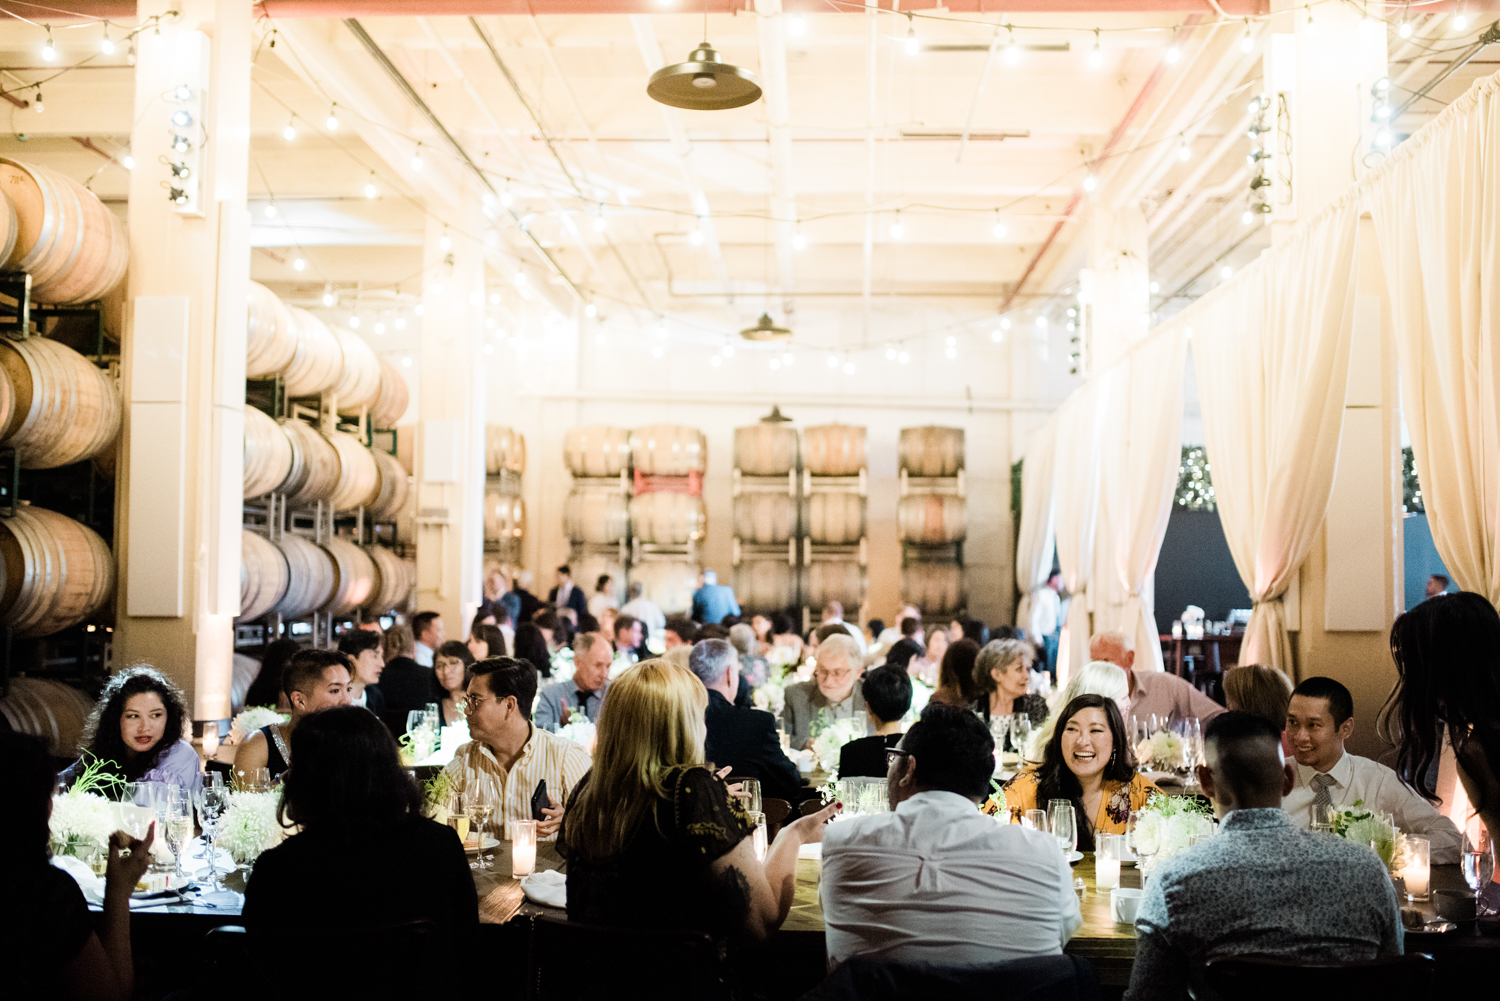 Potrero_Hill_Wine_Works_Wedding_ChristinaRichards_092.jpg